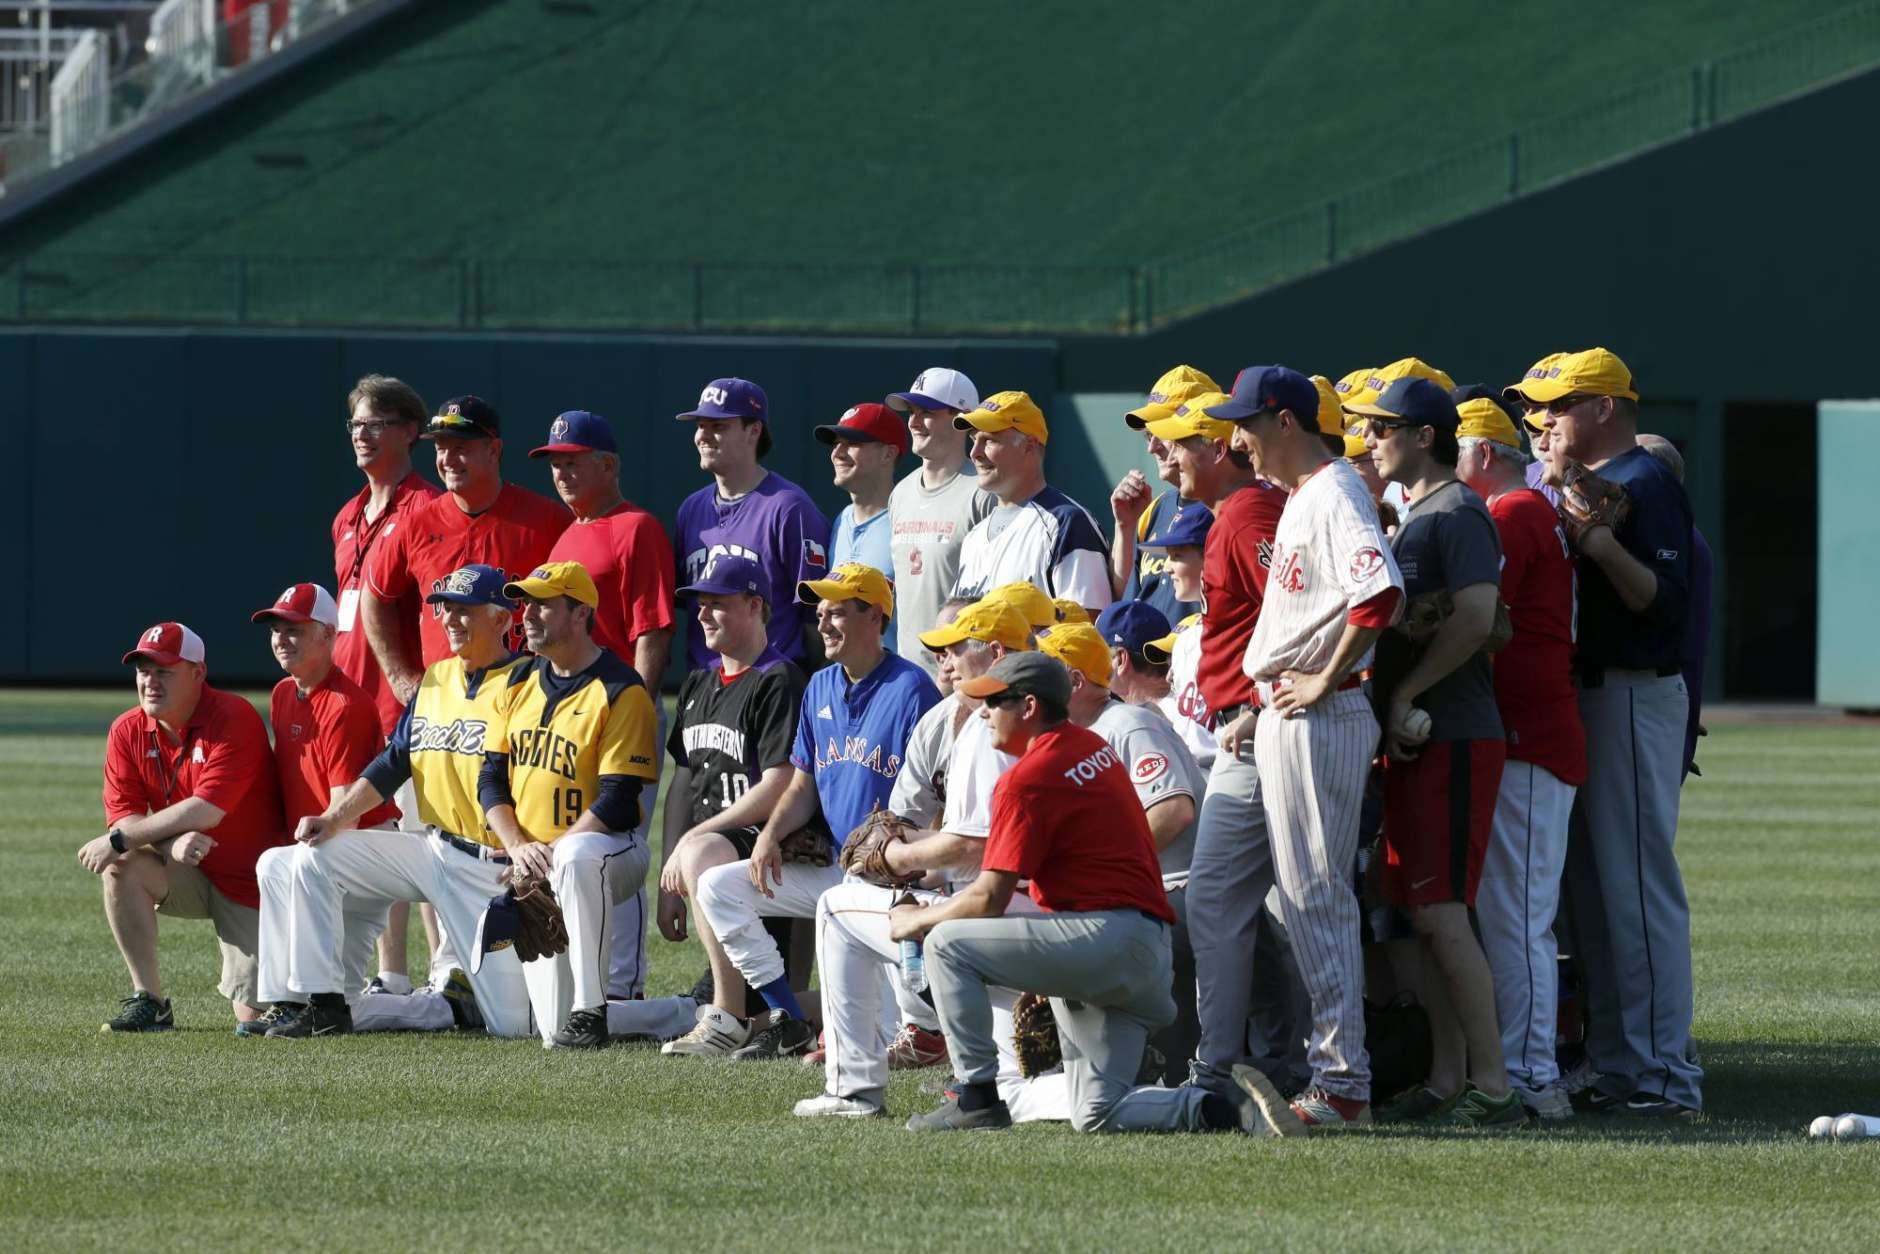 Wearing mostly Louisiana State University hats, the Republican team poses for a team picture before the Congressional baseball game, Thursday, June 15, 2017, in Washington. The annual GOP-Democrats baseball game raises money for charity. (AP Photo/Alex Brandon)